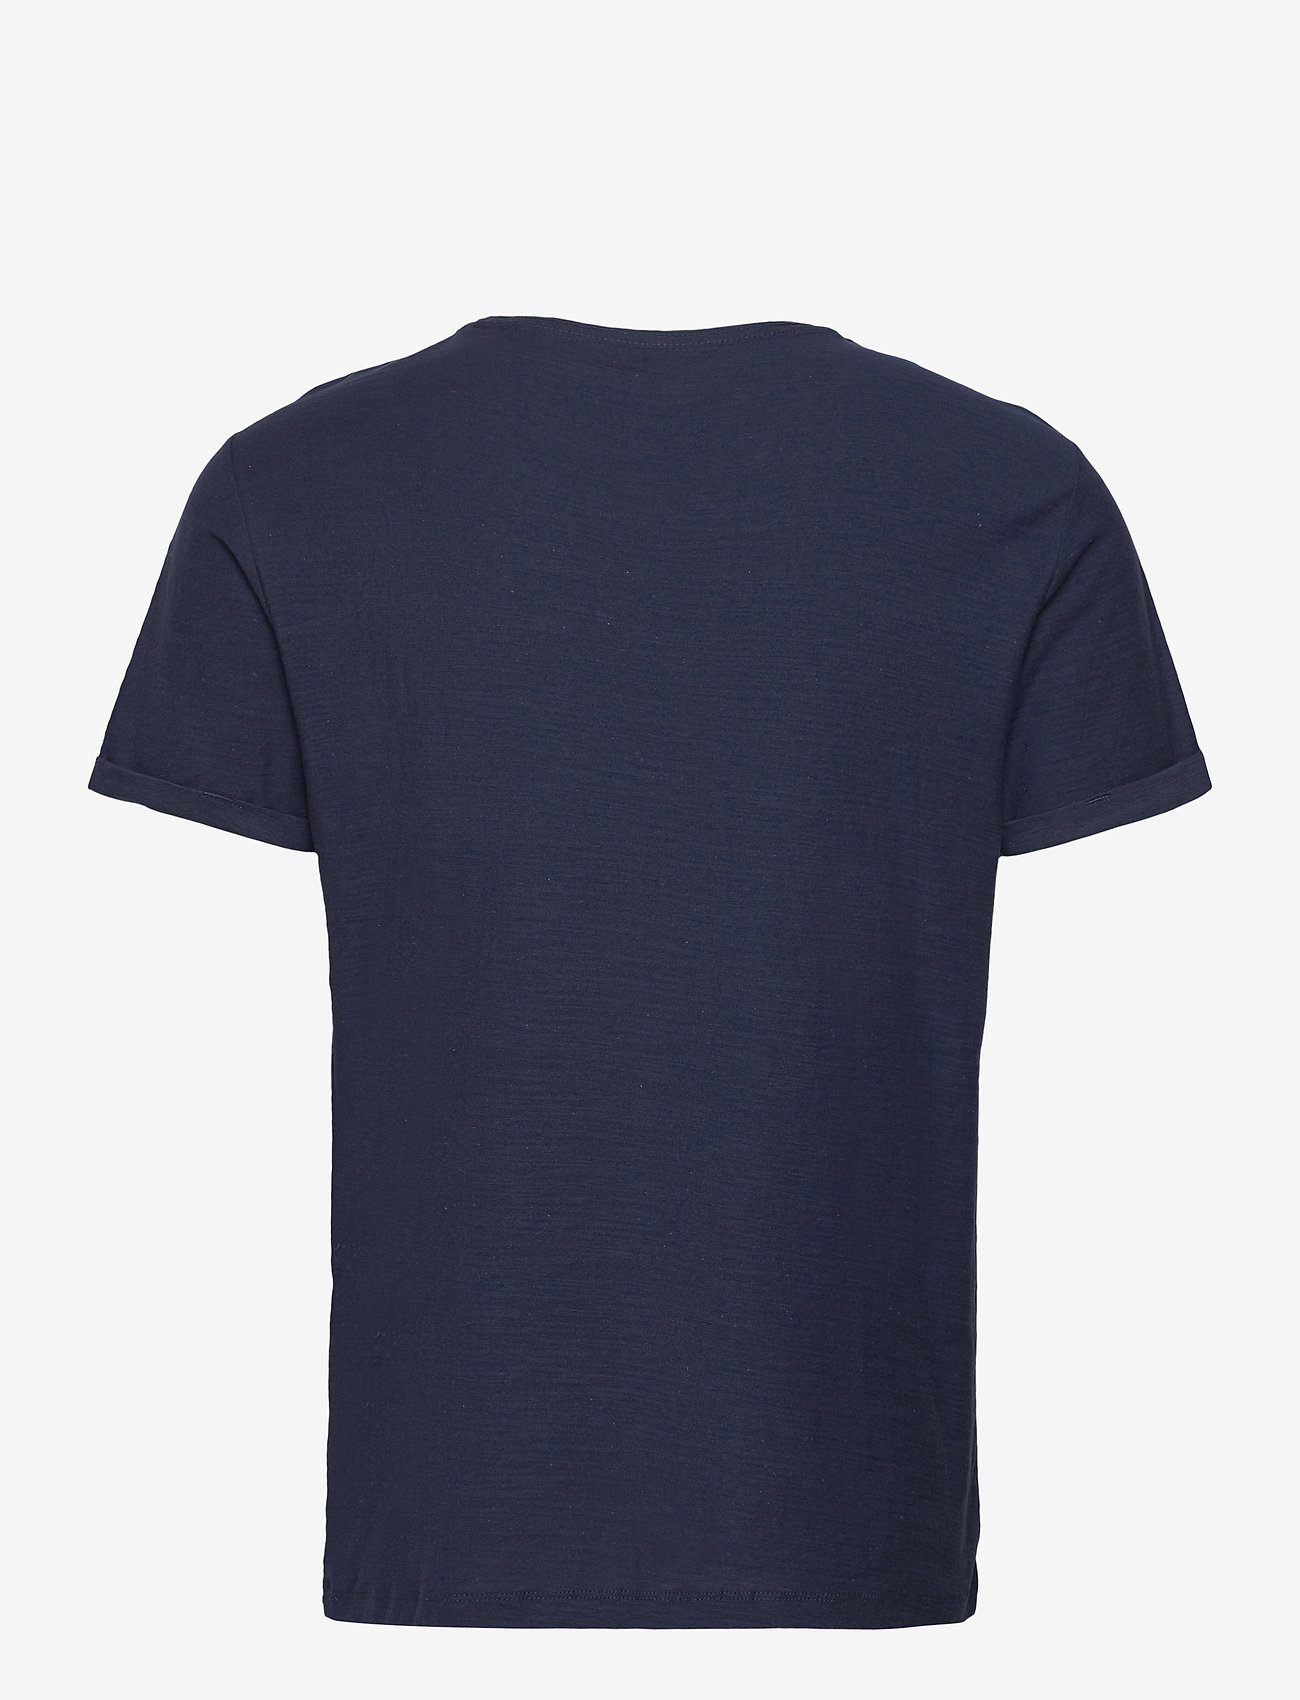 Blend - Tee - basic t-shirts - dress blues - 1